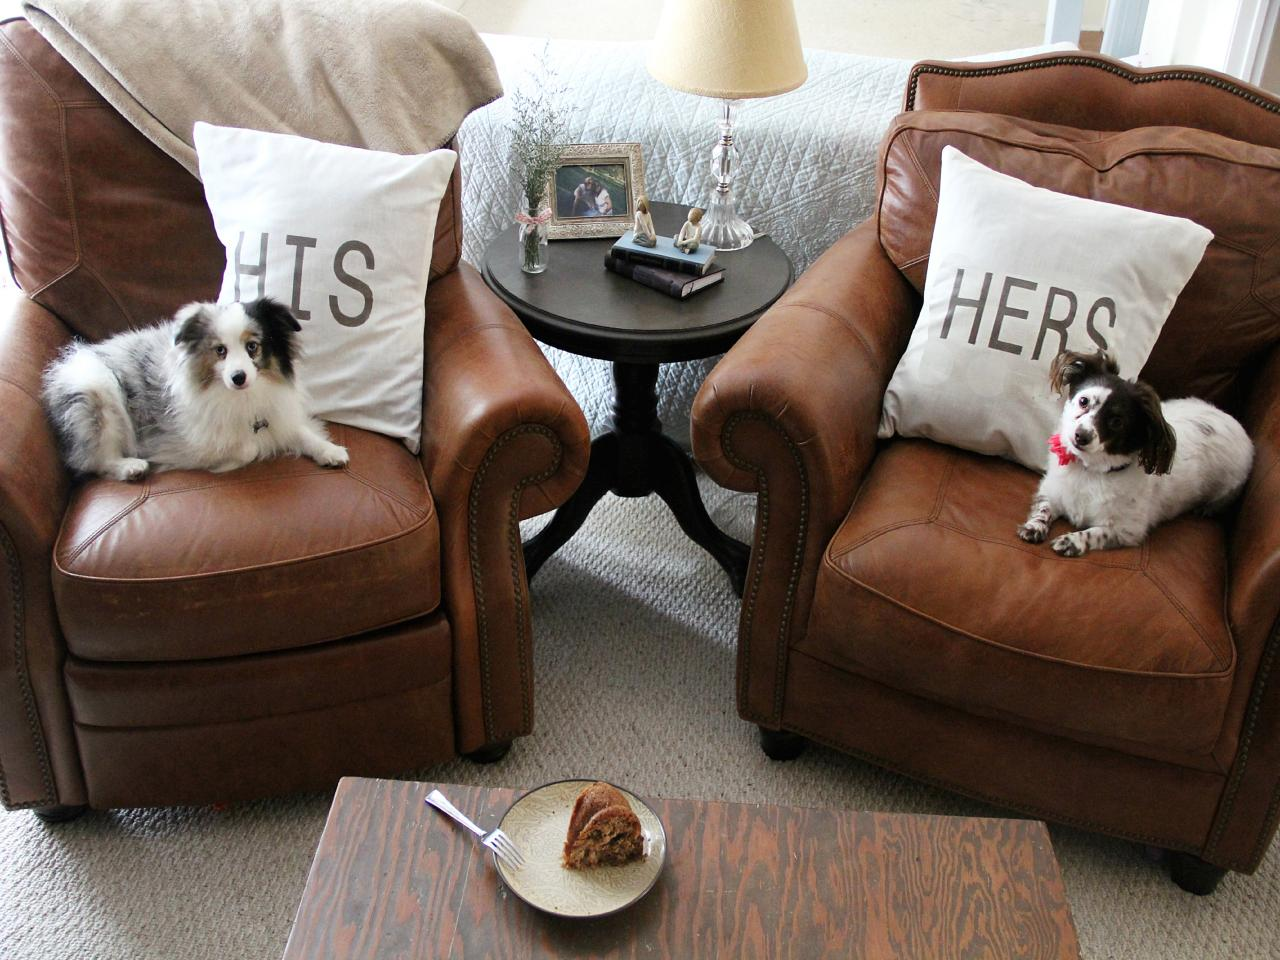 Inspirational Leather Couches And Dogs 48 On Sofas and Couches Ideas with Leather Couches And Dogs